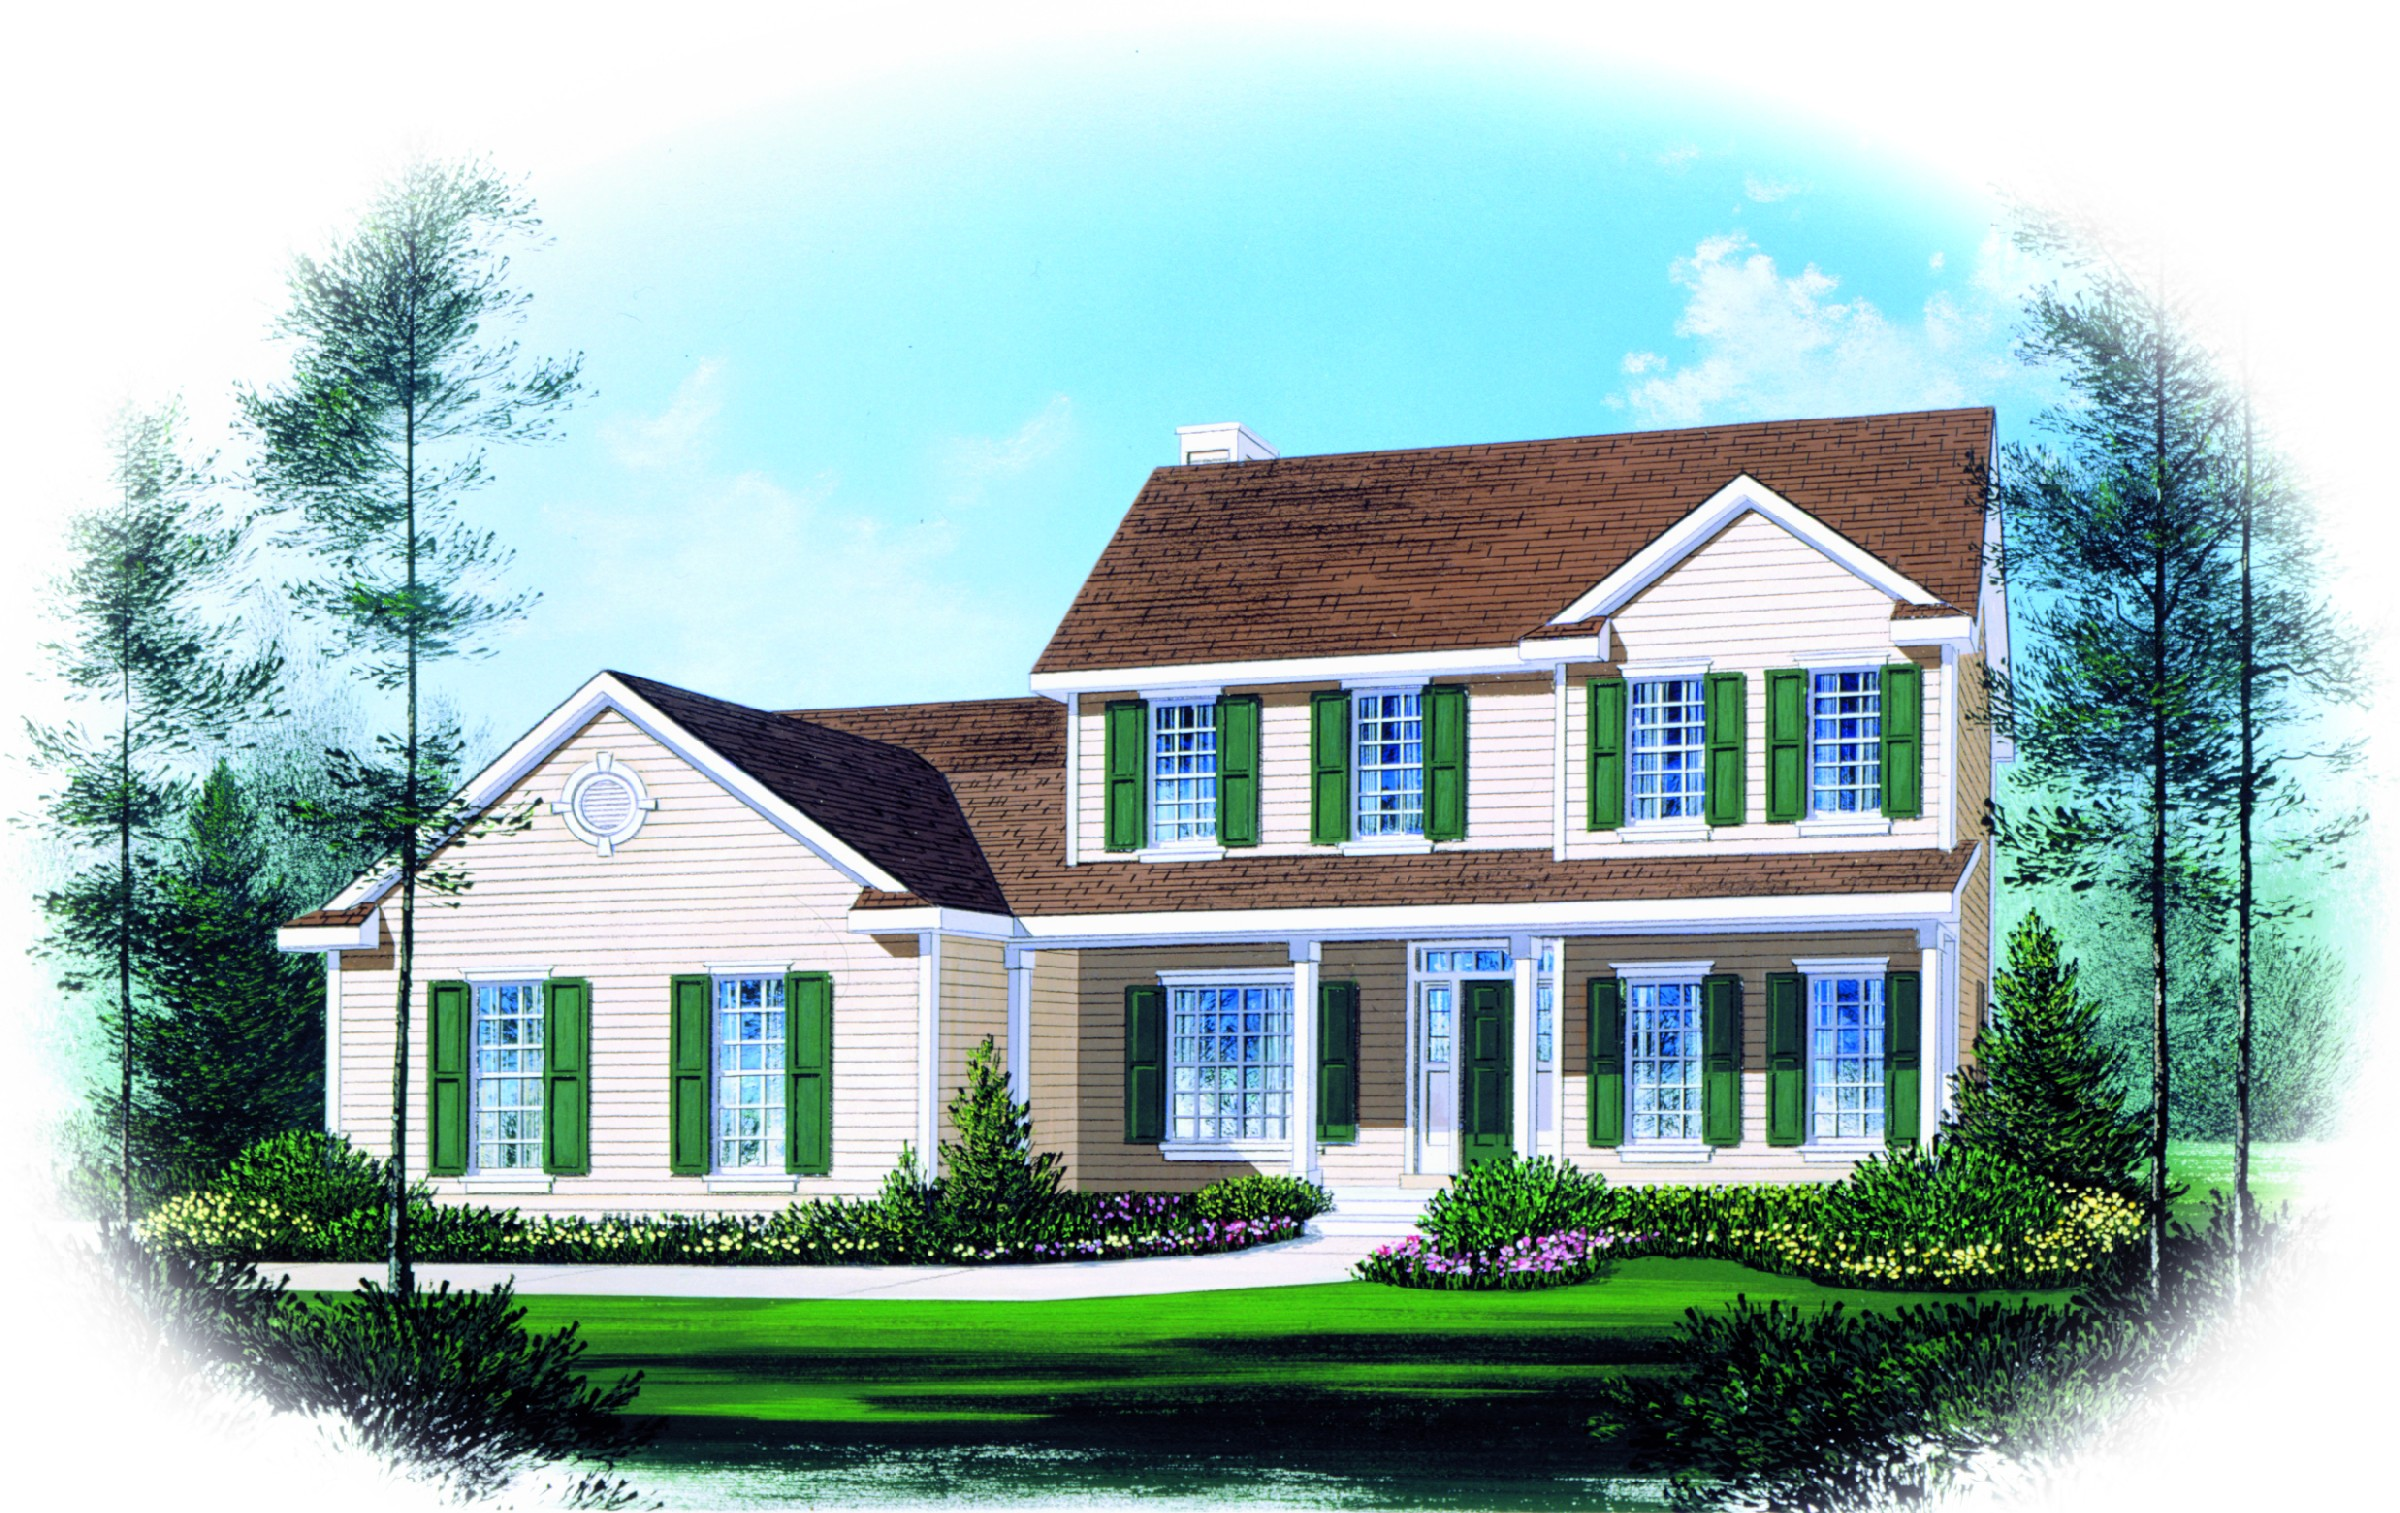 Two story traditional home plan design 2289sl 1st 2 story traditional house plans